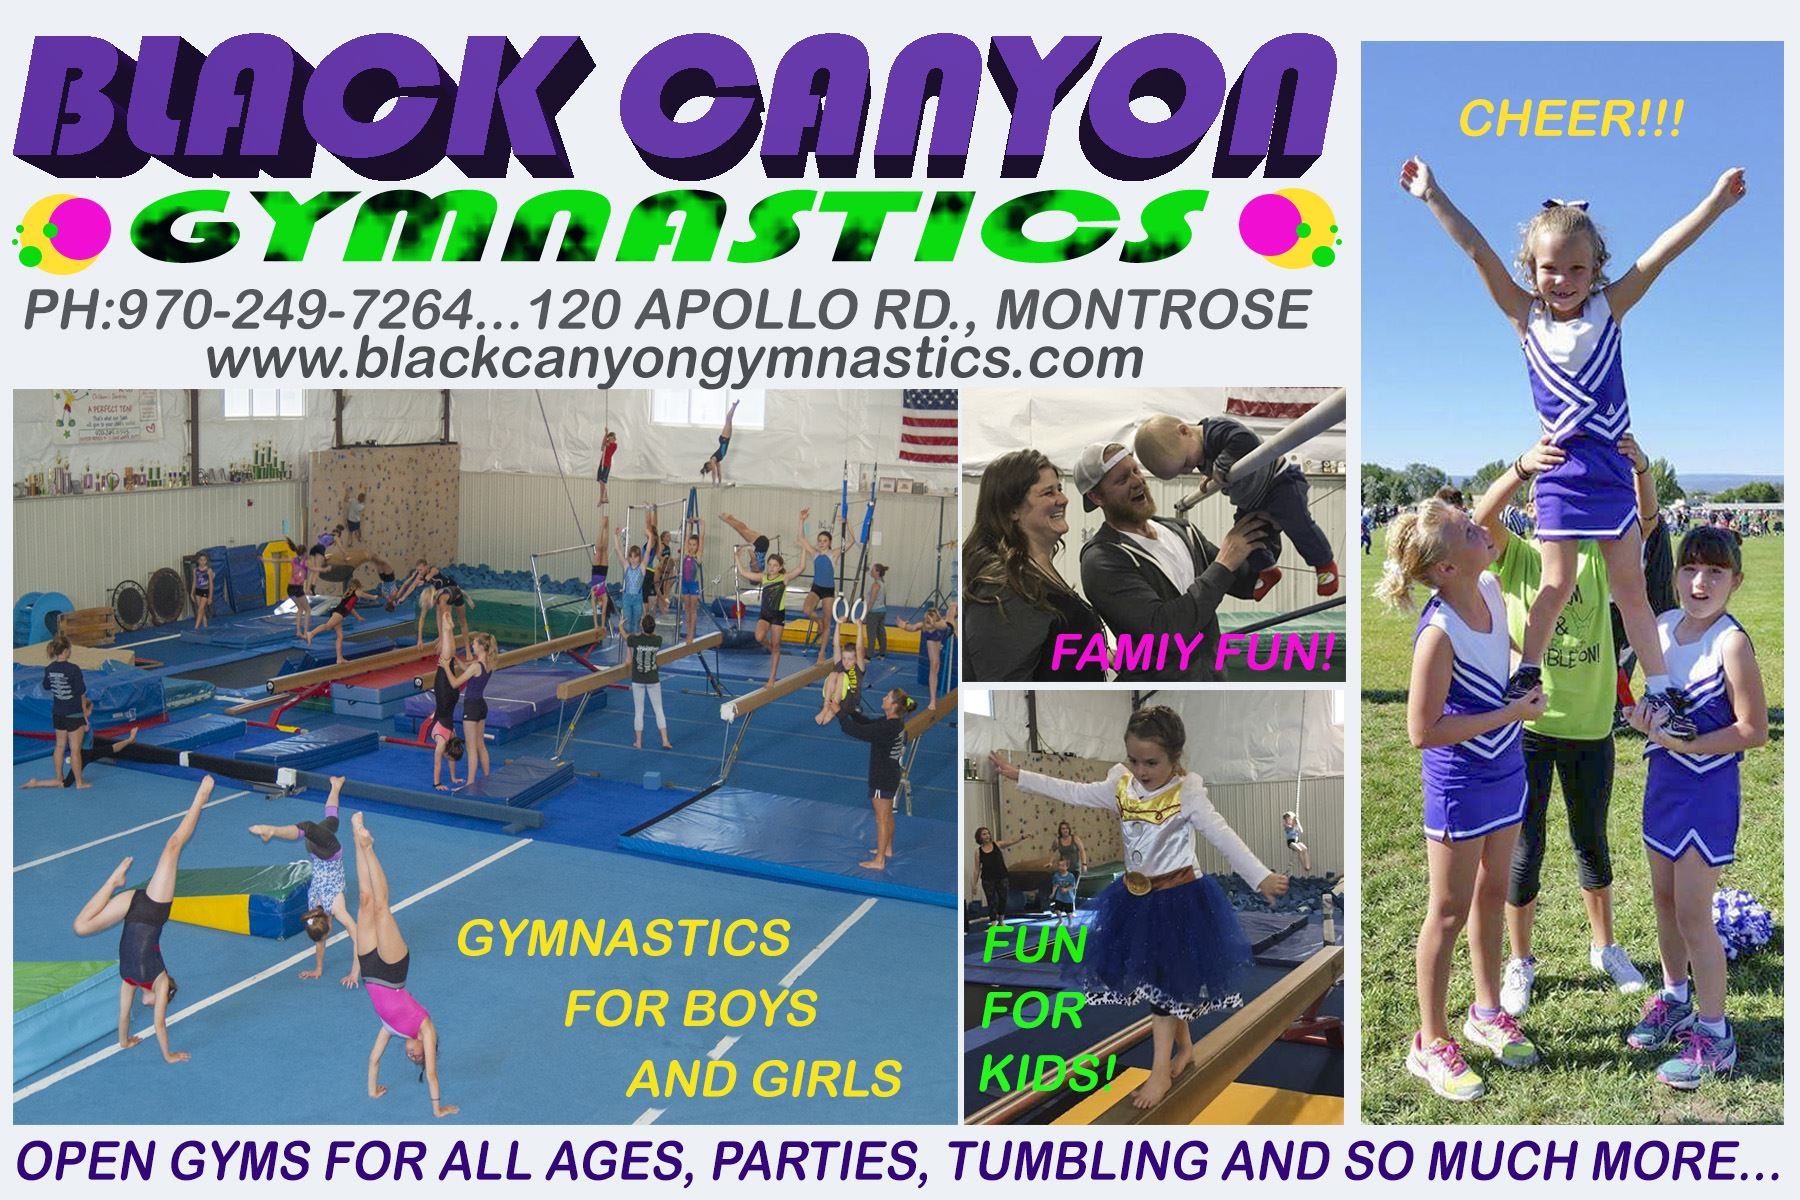 Black Canyon Gymnastics